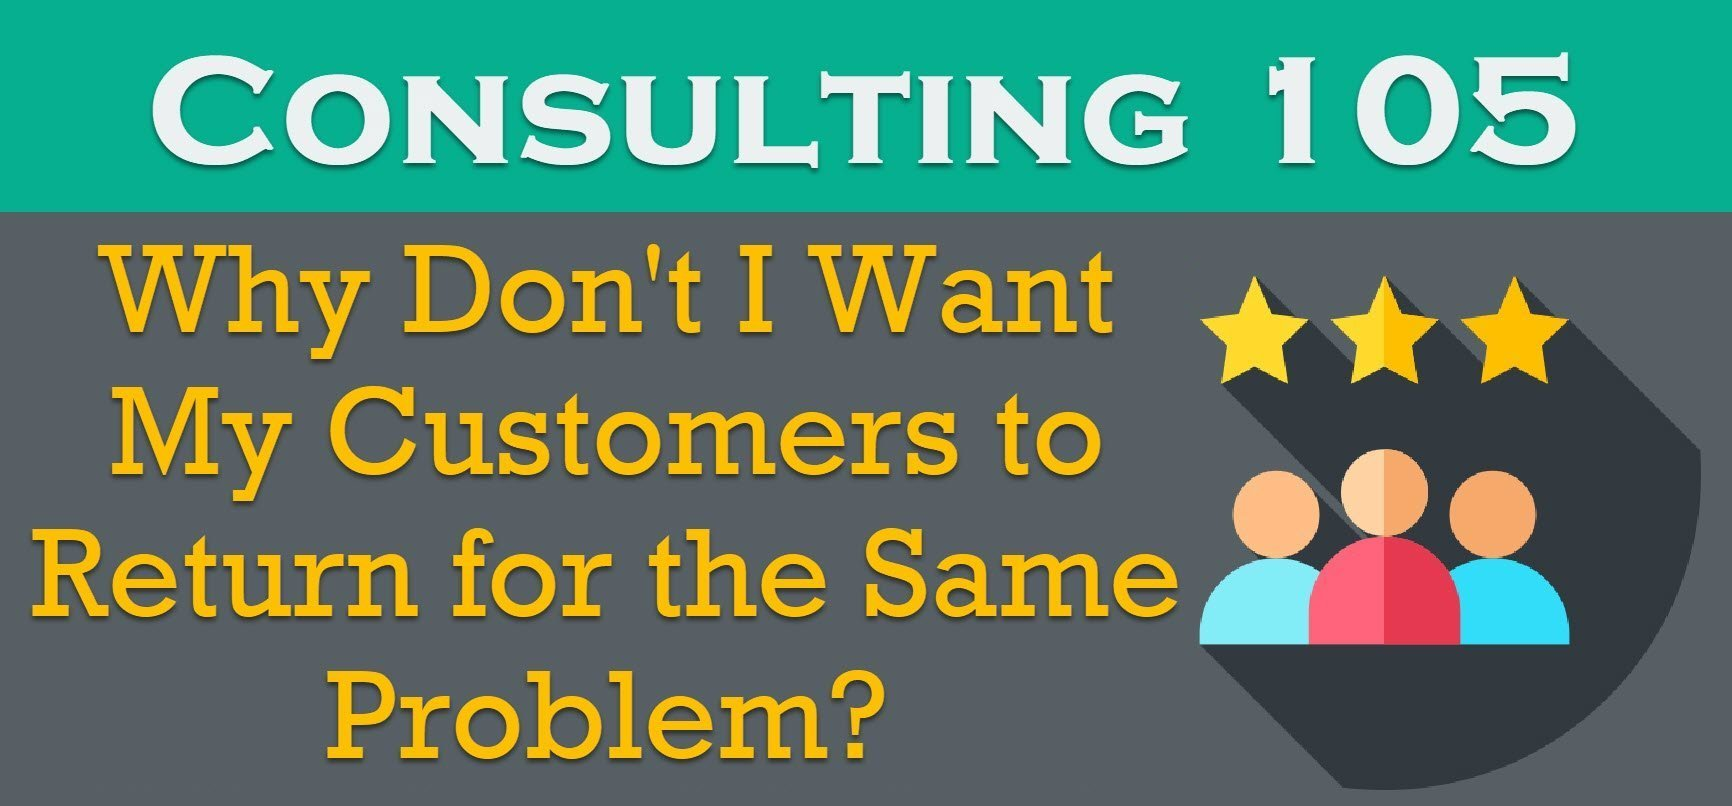 Consulting 105 - Why Don't I Want My Customers to Return for the Same Problem? - SQL Server Performance Tuning consulting105